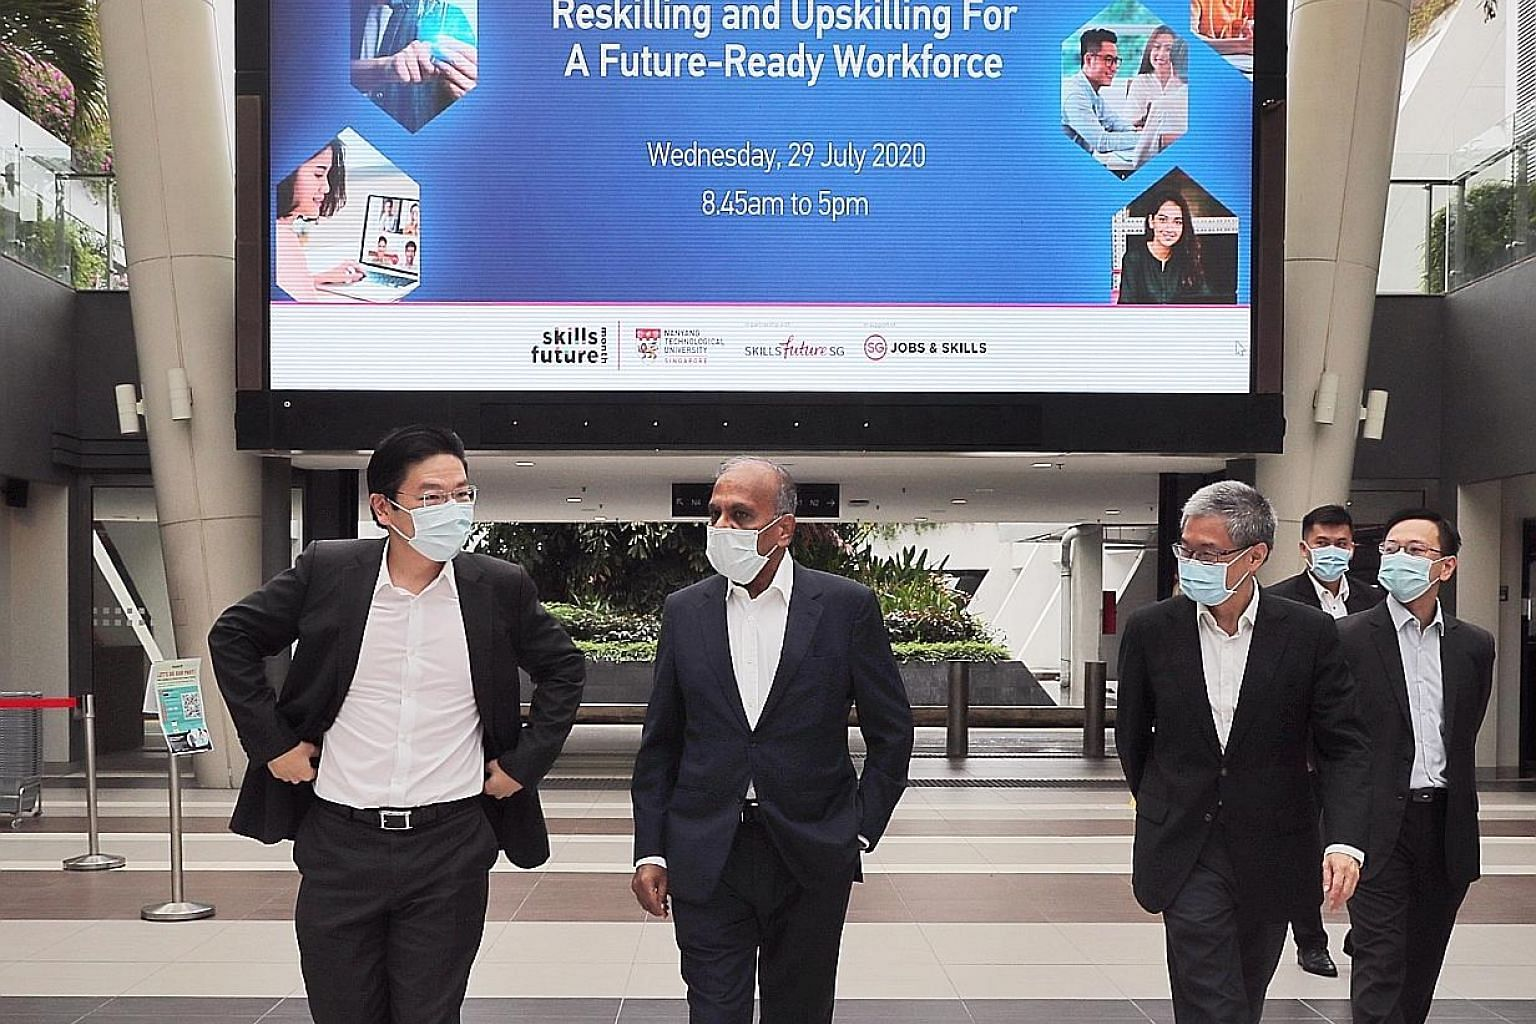 (From left) Education Minister Lawrence Wong, Nanyang Technological University (NTU) president Subra Suresh, NTU deputy president and provost Ling San, and other guests arriving at SkillsFuture@NTU yesterday. ST PHOTO: GAVIN FOO